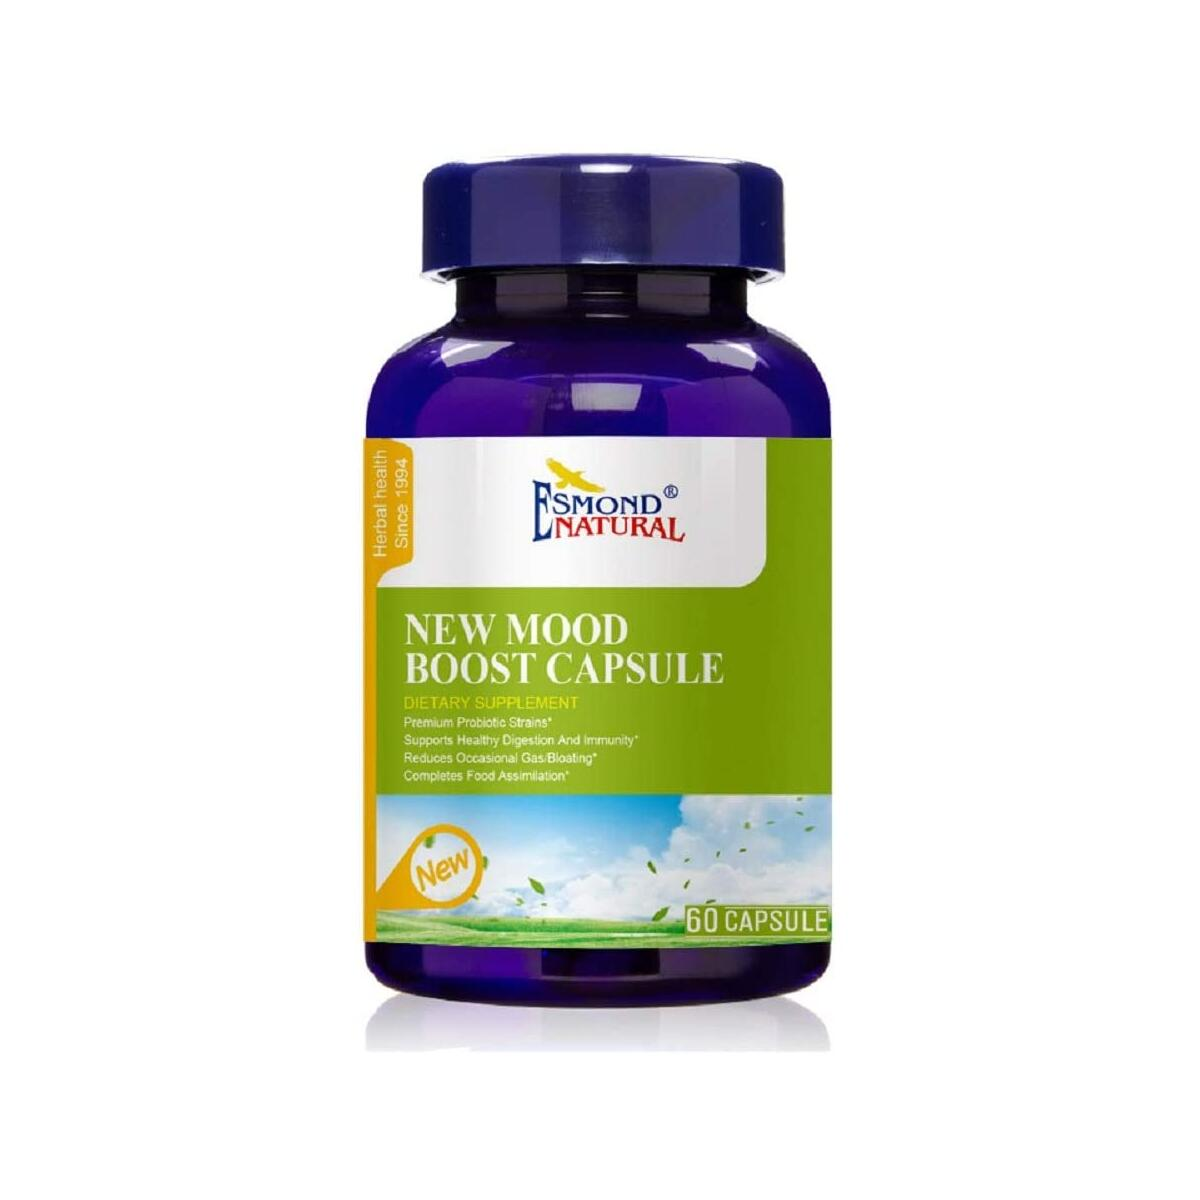 (5 Count, 25% Off) Esmond Natural: New Mood Boost Capsule (Supports Healthy Digestion & Immunity), GMP, Natural Product Assn Certified, Made in USA-300 Capsules